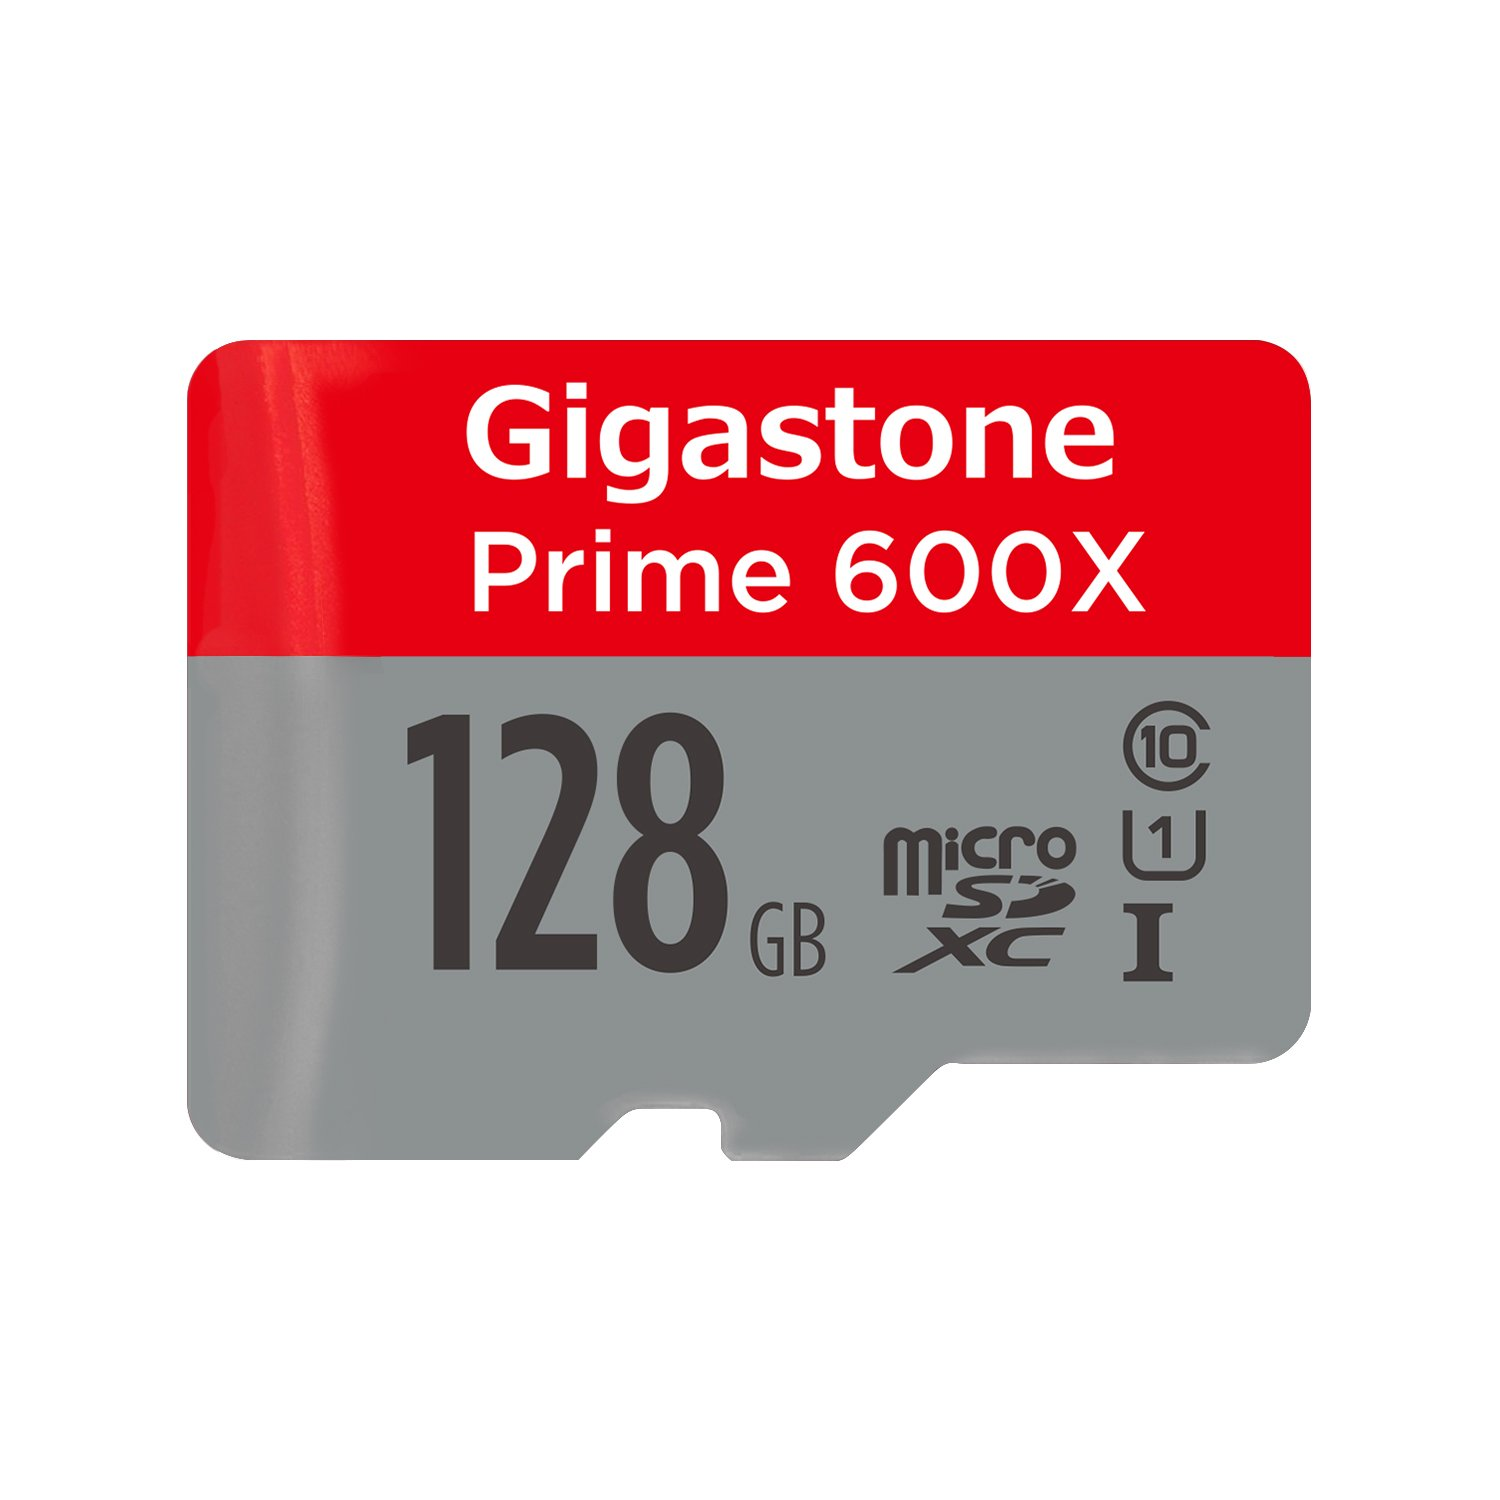 Gigastone 128GB Micro SD Card U1 C10 Class 10 UHS-I Micro SDXC Memory Card with MicroSD to SD Adapter High Speed Full HD Video Android Samsung Nintendo Dashcam Camera Canon Nikon GoPro DJI Drone